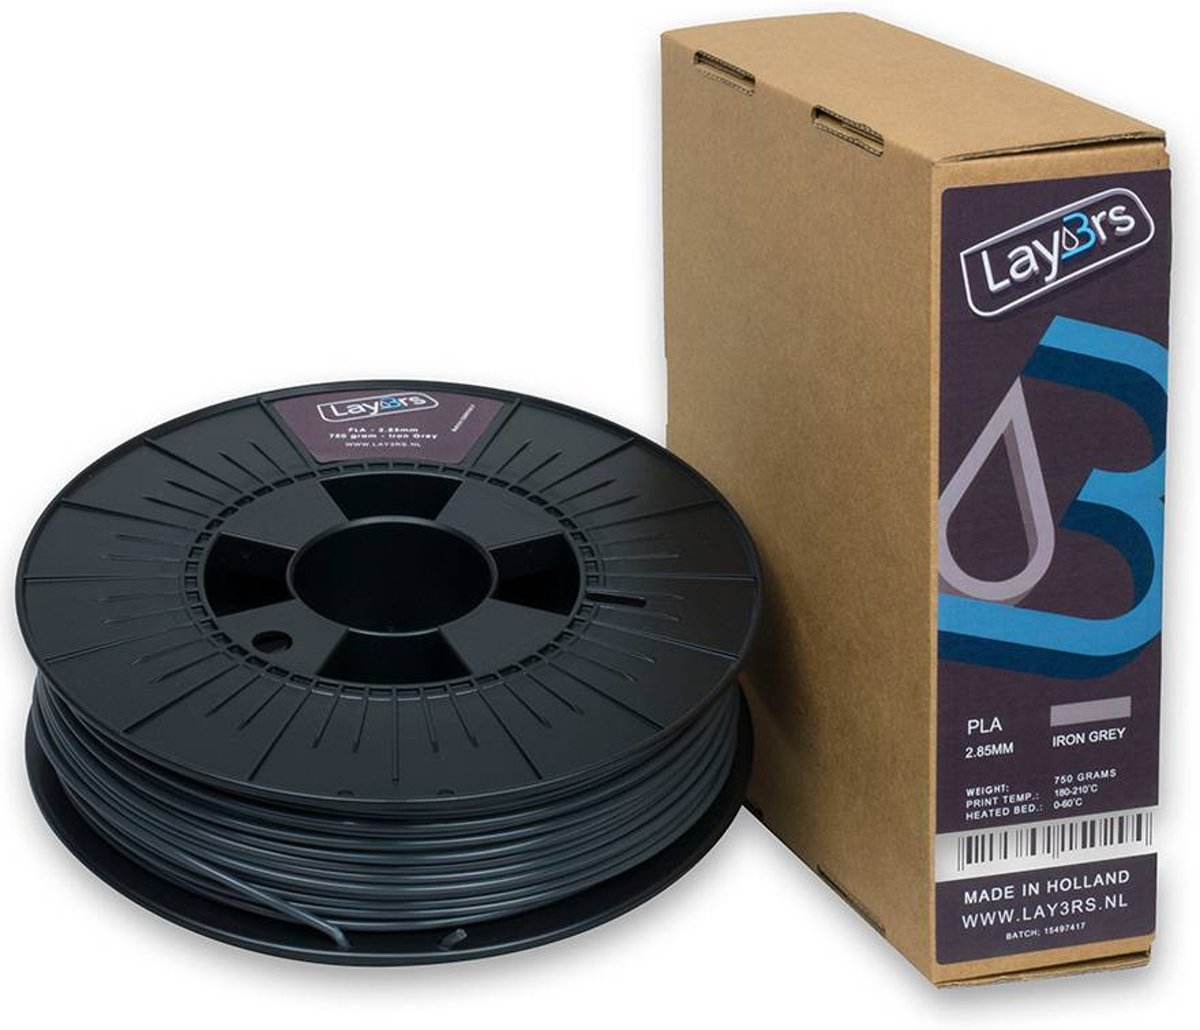 Lay3rs PLA Iron Grey - 1.75 mm